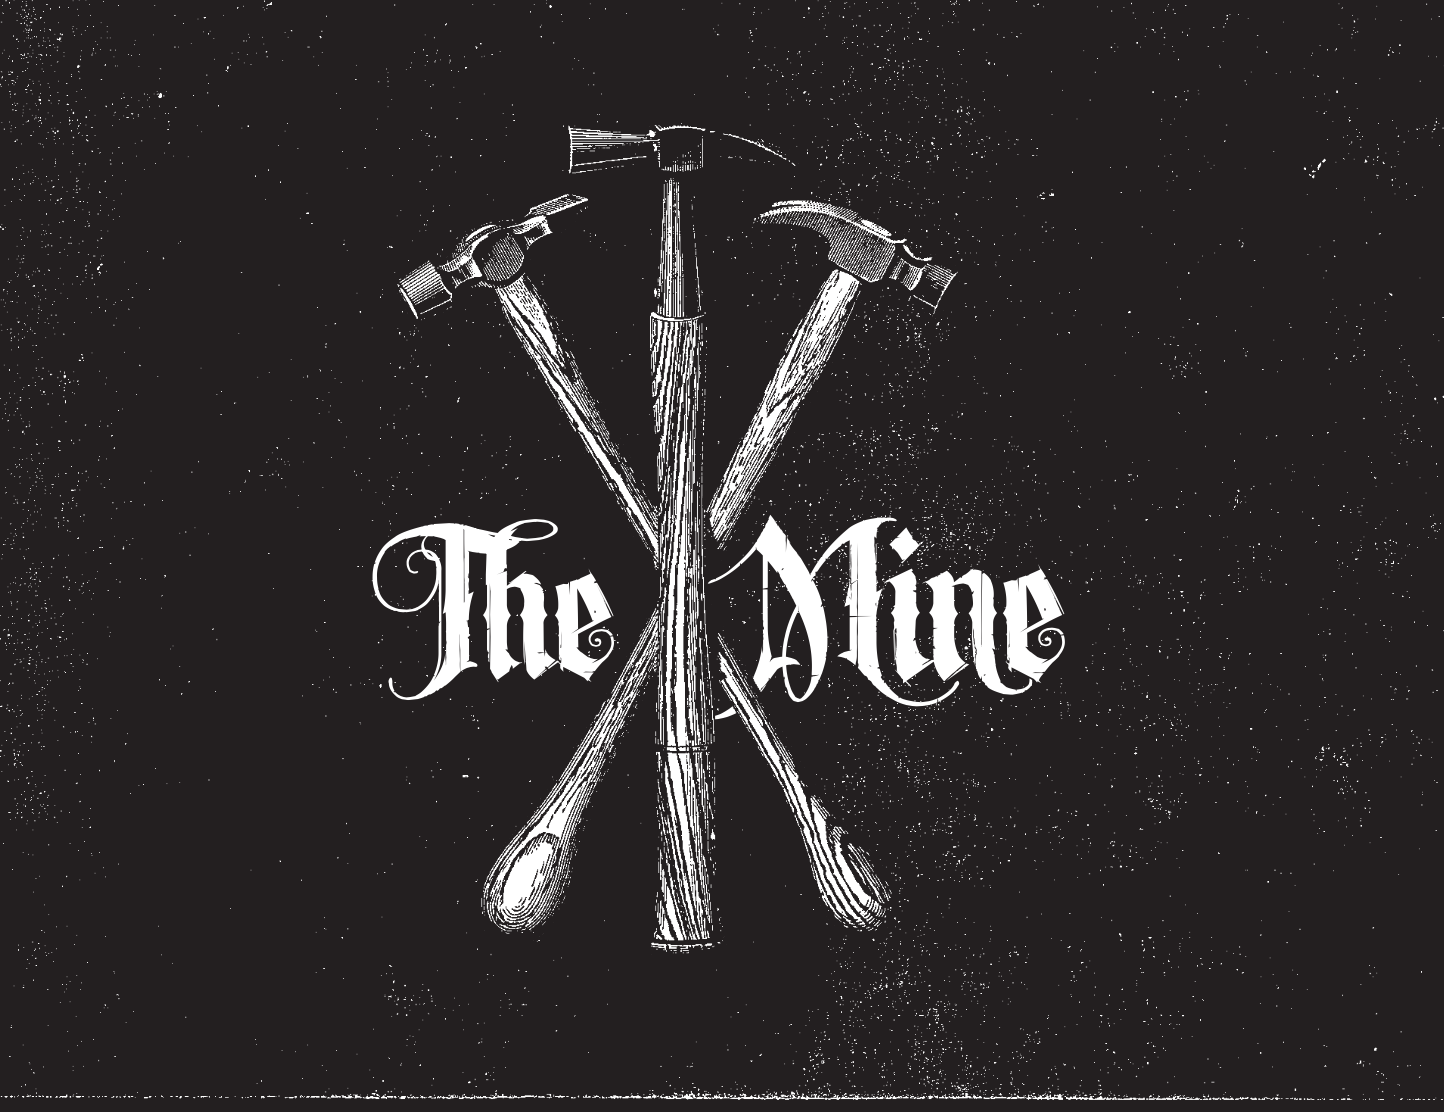 Heres the title page of a story called The Mine, first published in Monkeybicycle.